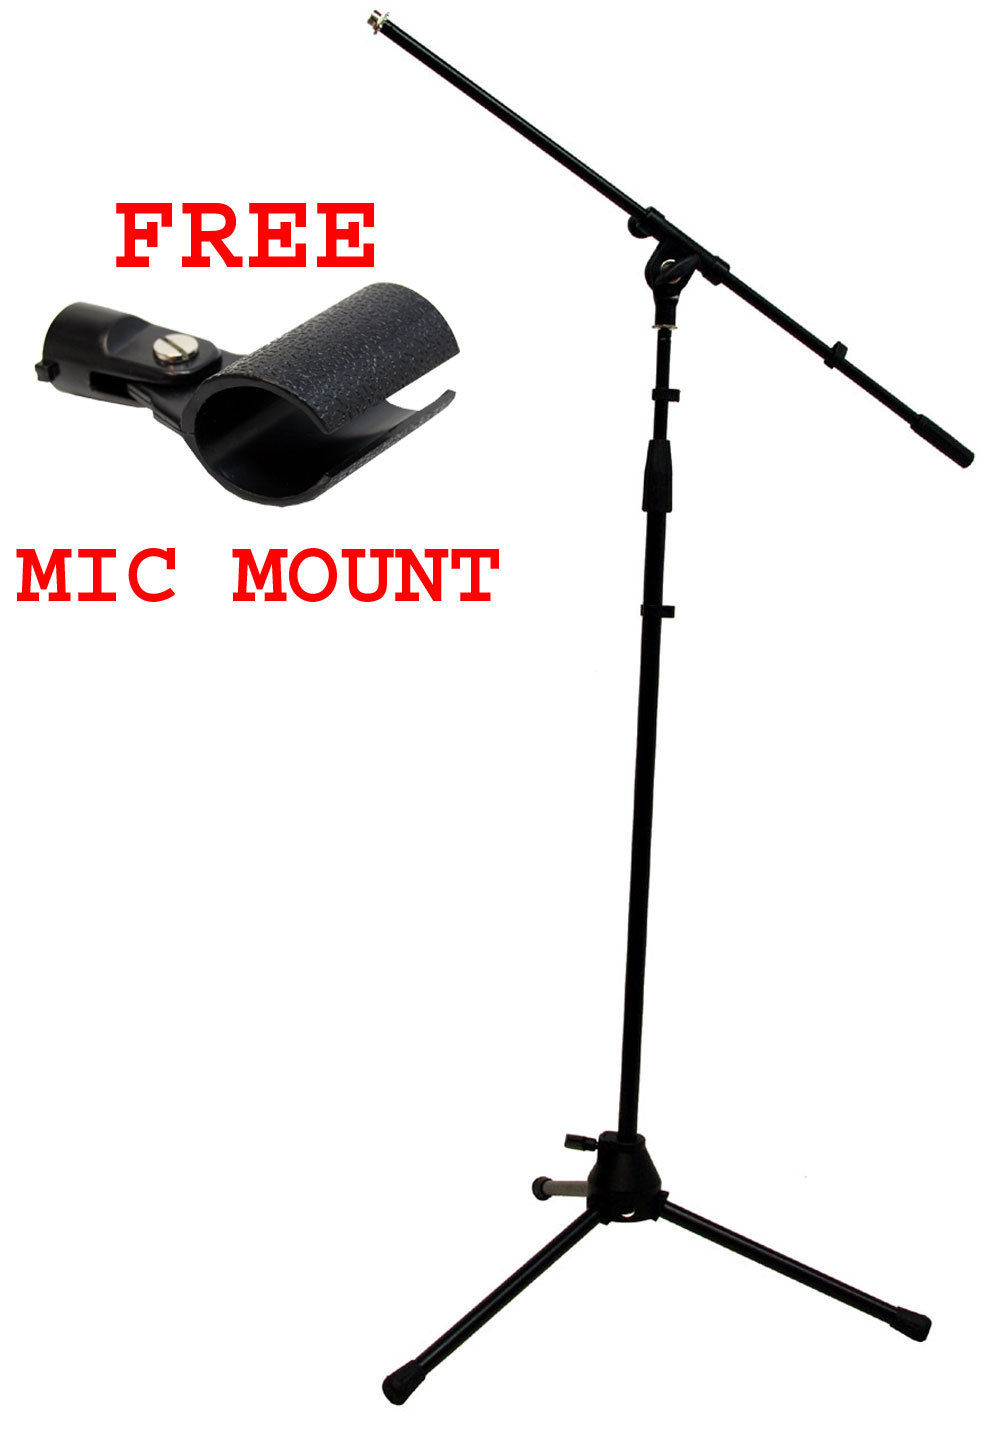 peavey classic 50 212 electric guitar combo amp 2 12 speaker mic stand cables ebay. Black Bedroom Furniture Sets. Home Design Ideas